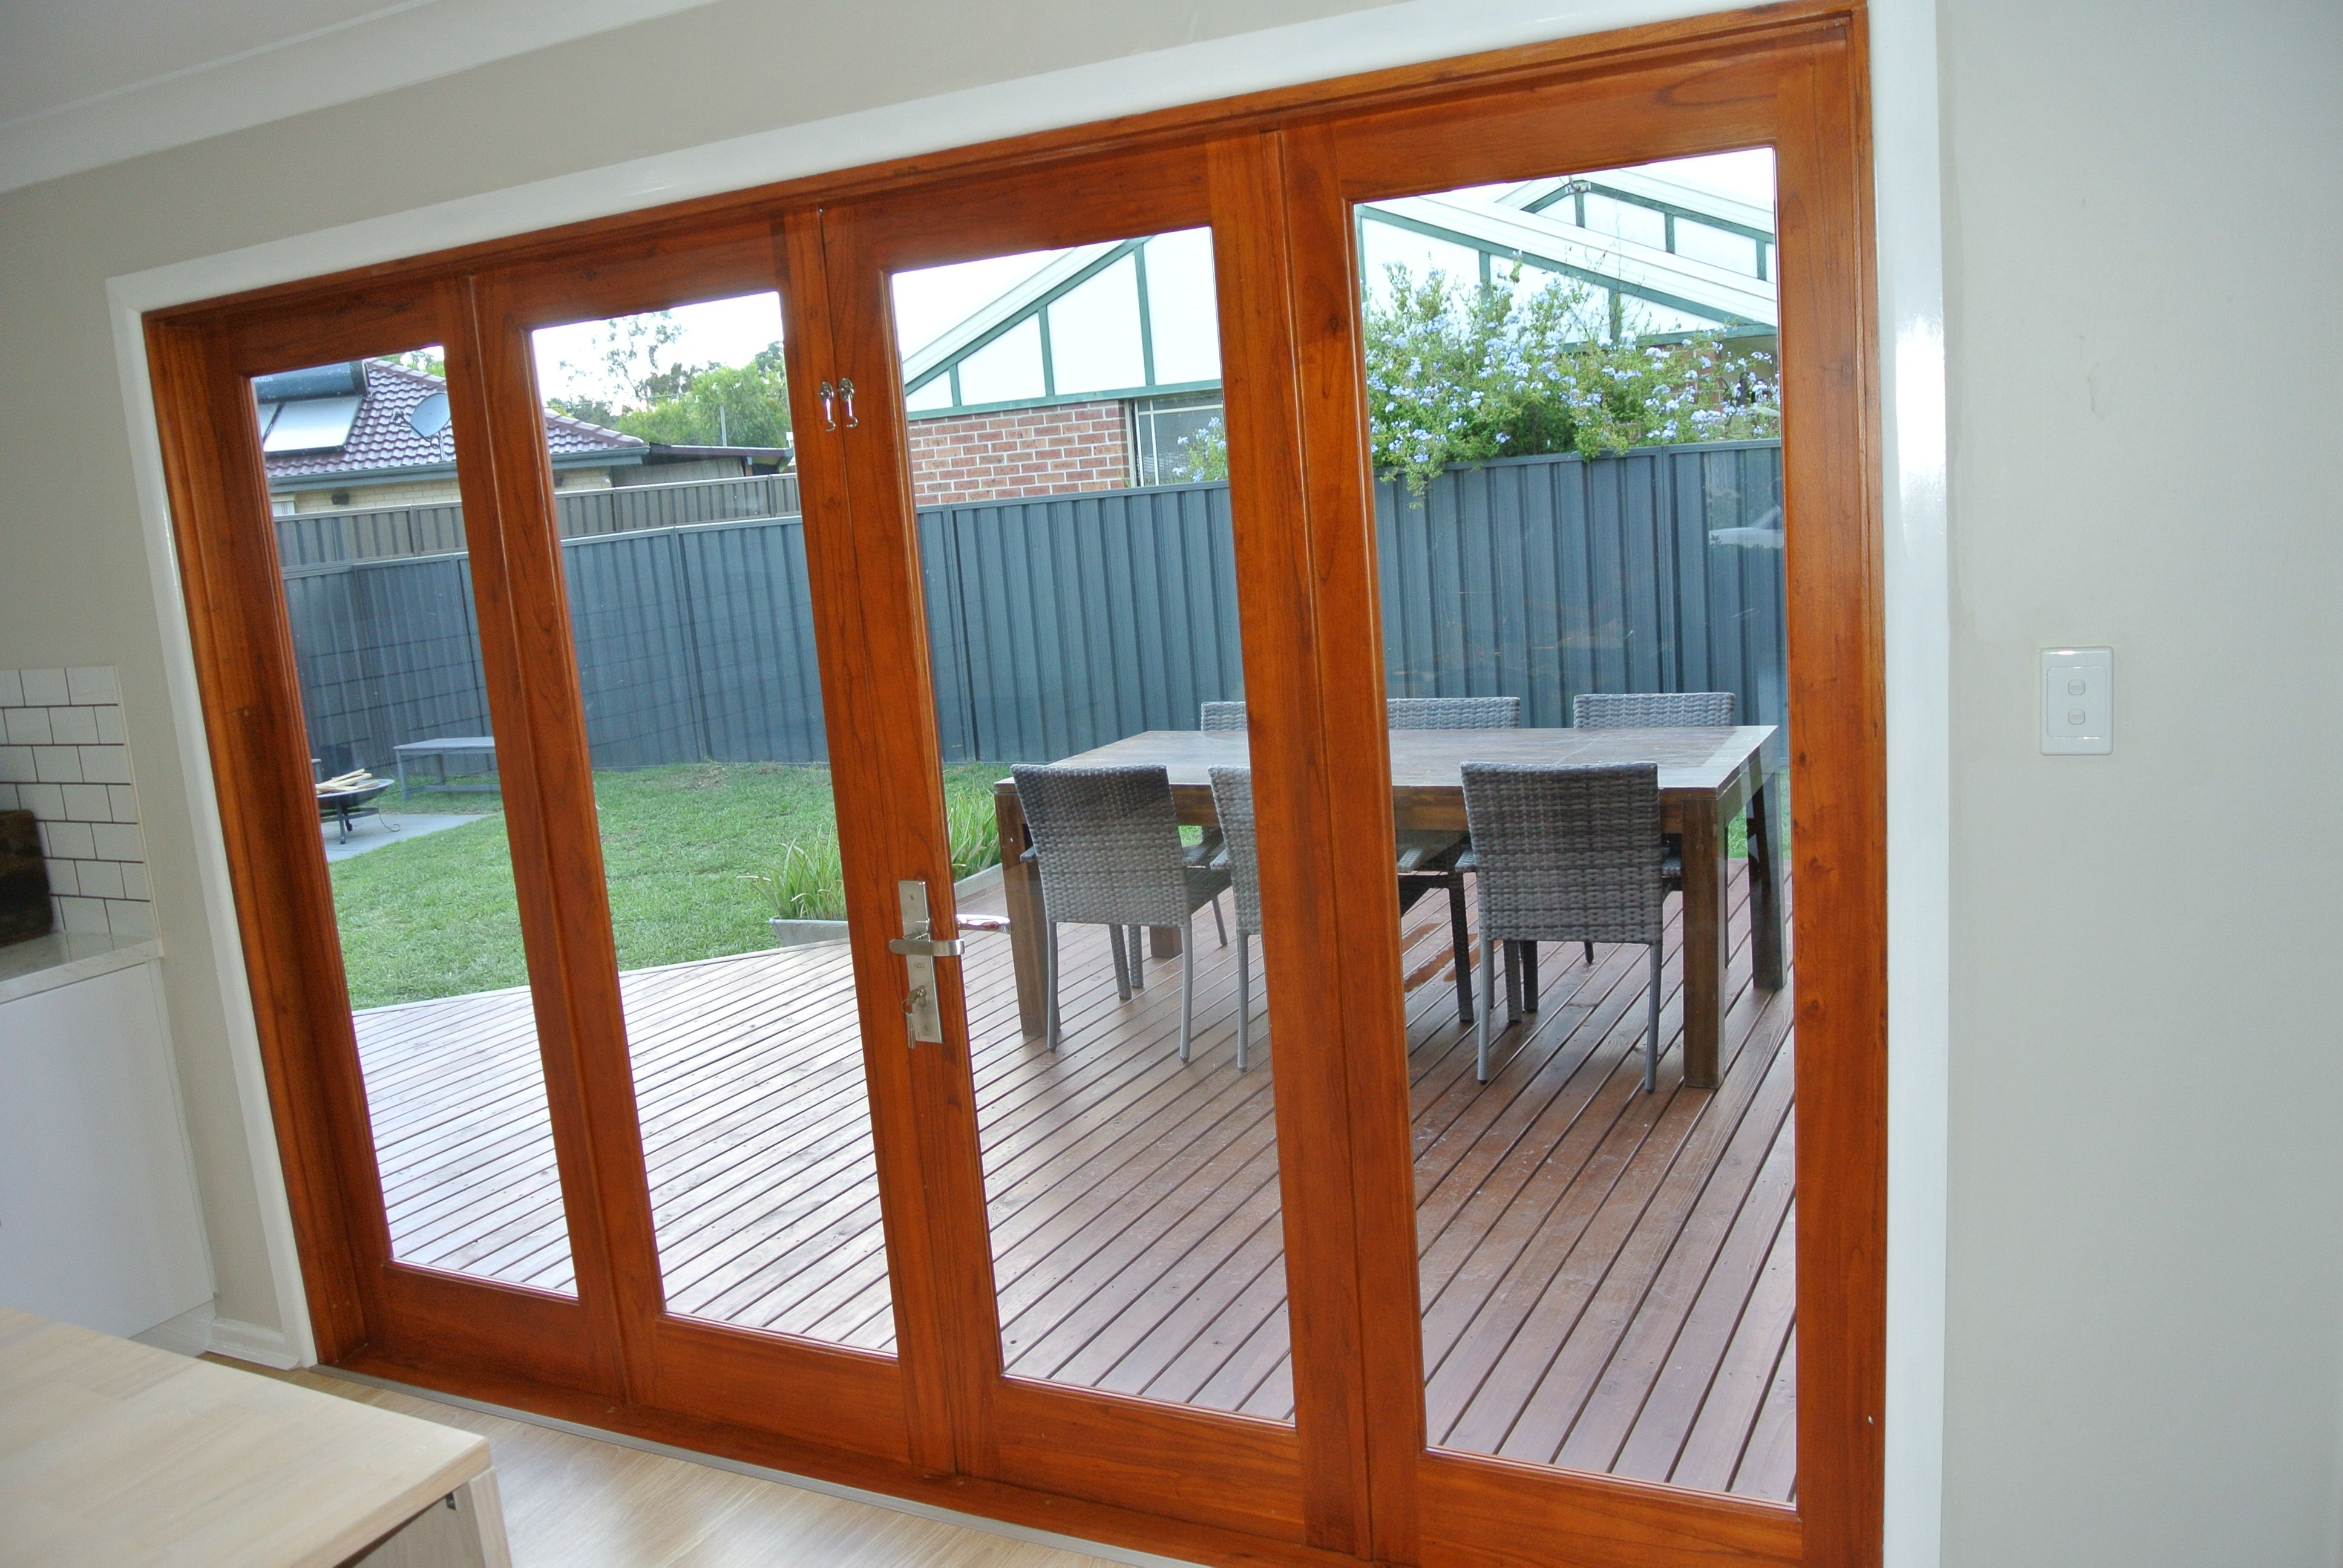 4 Panel Bifold Door Dimensions 2950mm X 2100mm X 140mm Dimensions Are Exact To The Outside Of The Frame 6mm Tou Sliding Folding Doors Bifold Doors Timber Door